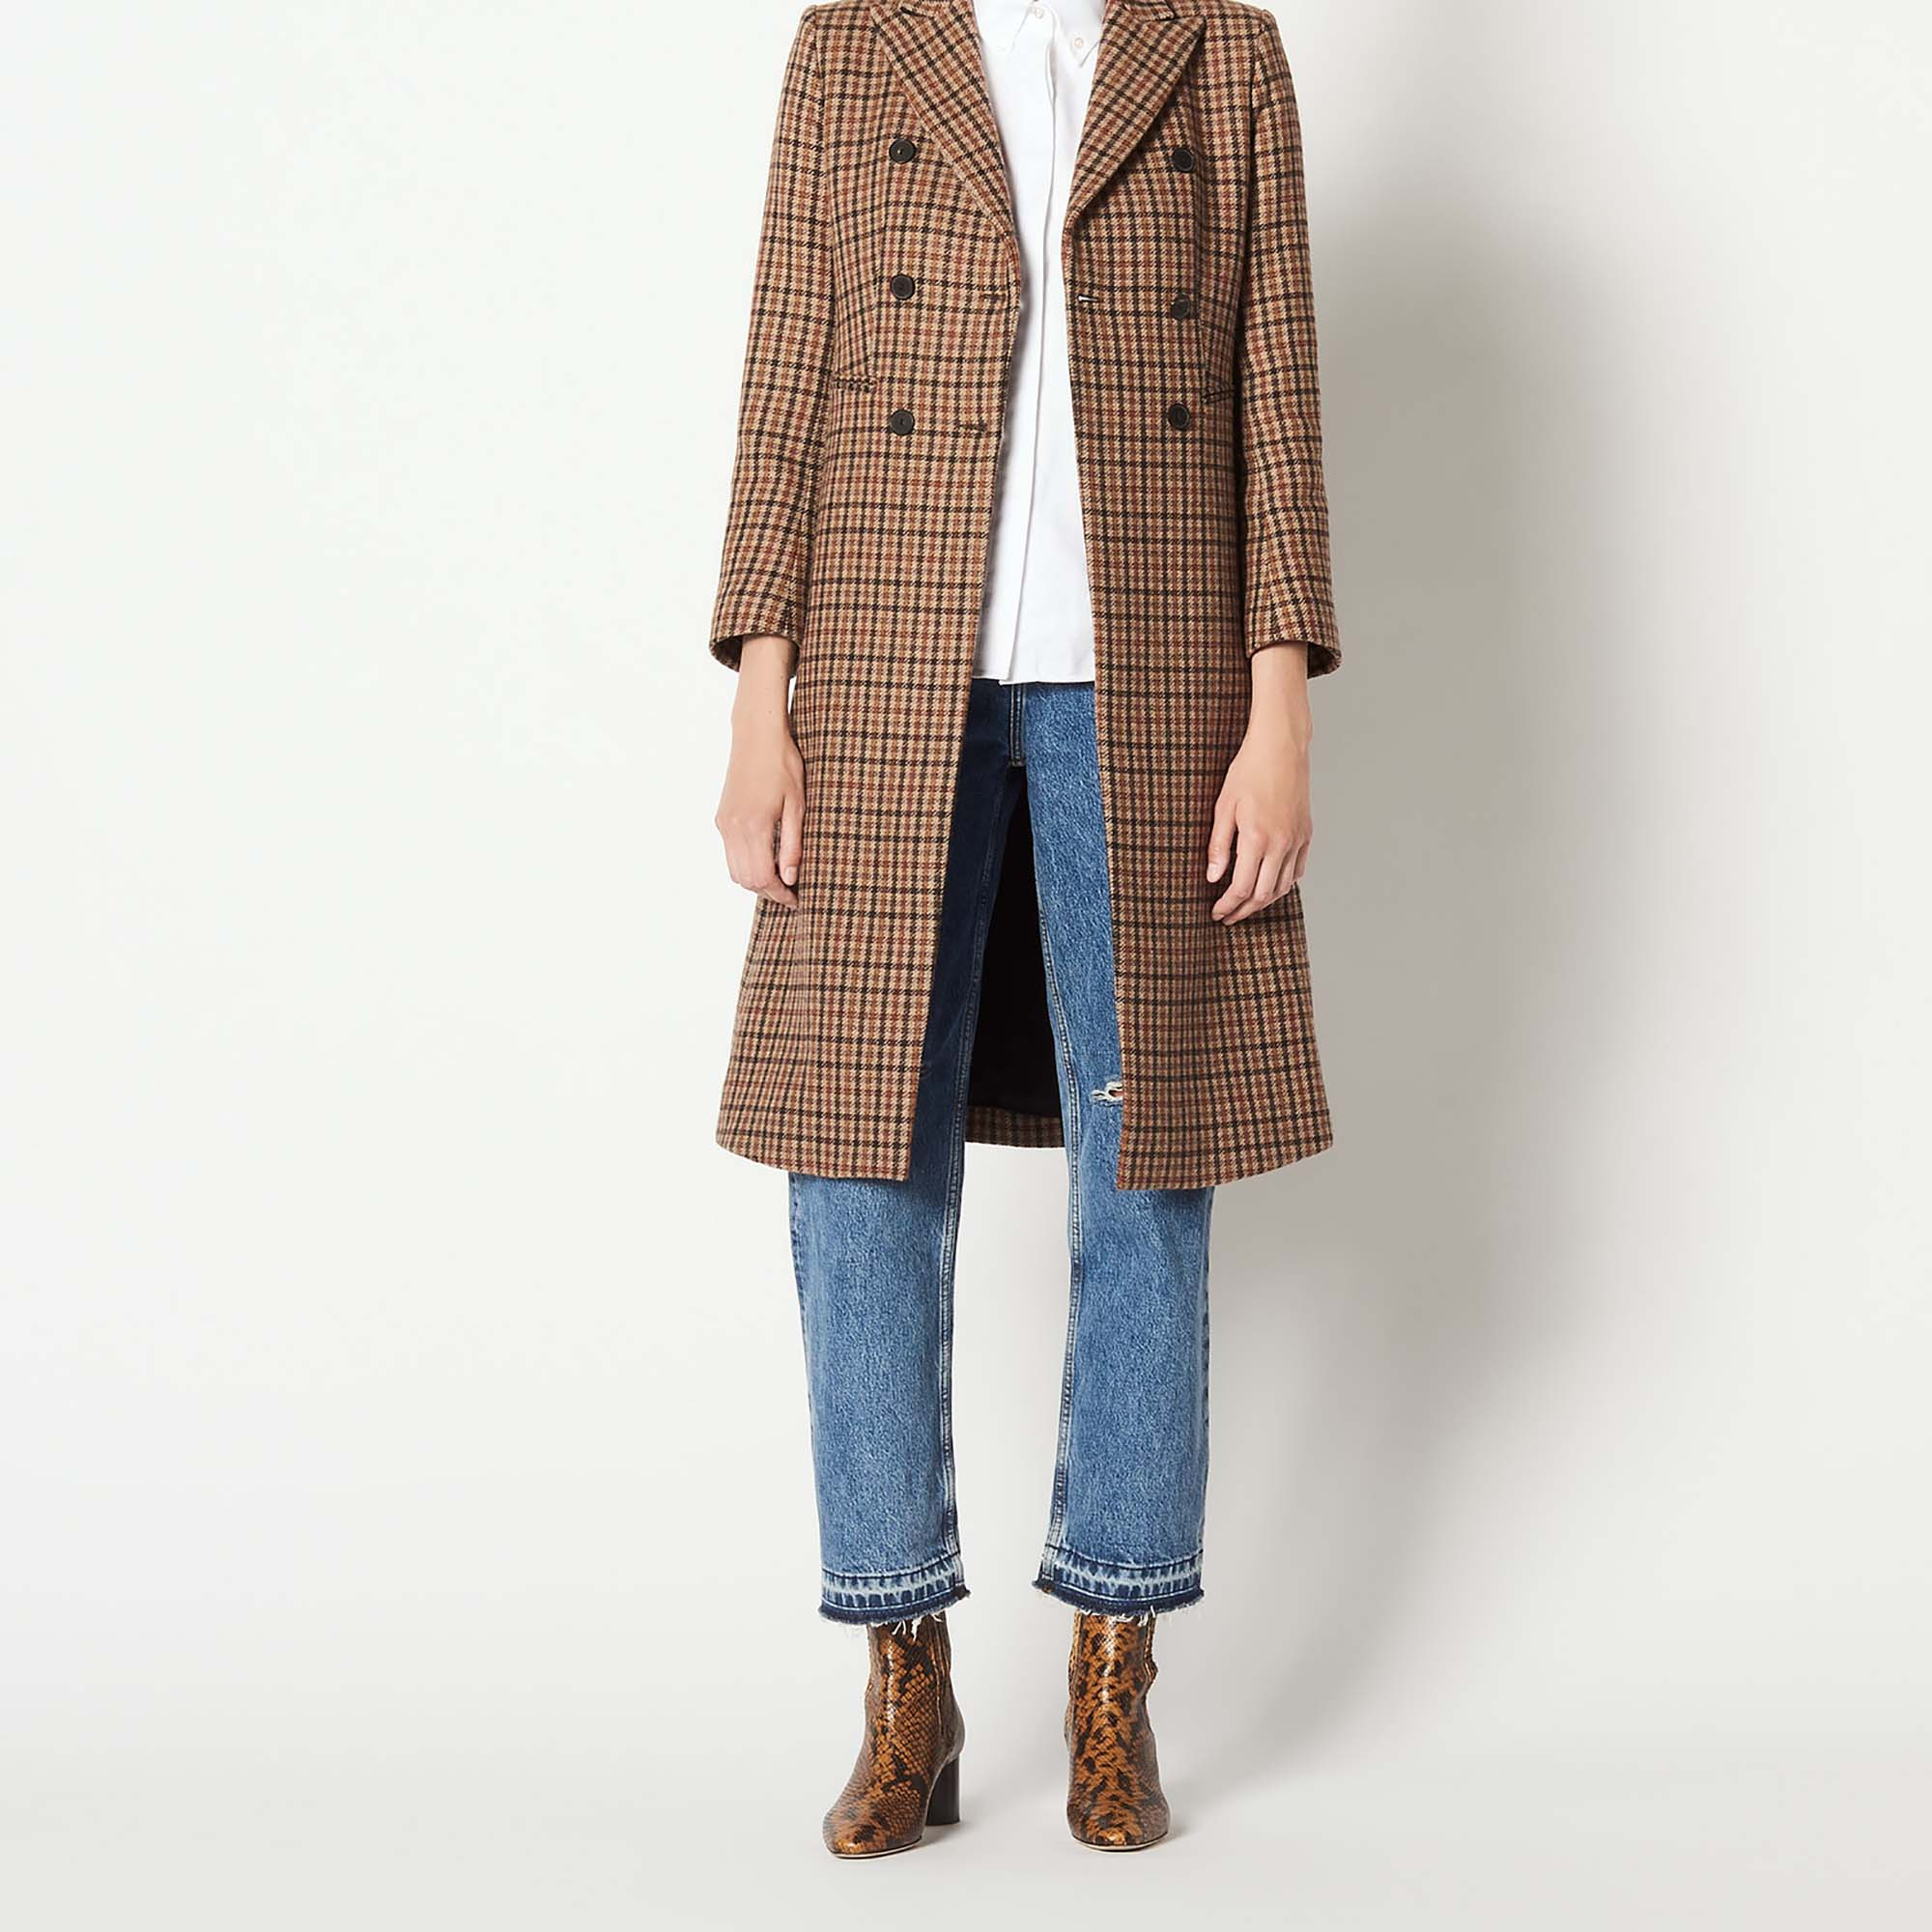 Manteau long en laine à carreaux